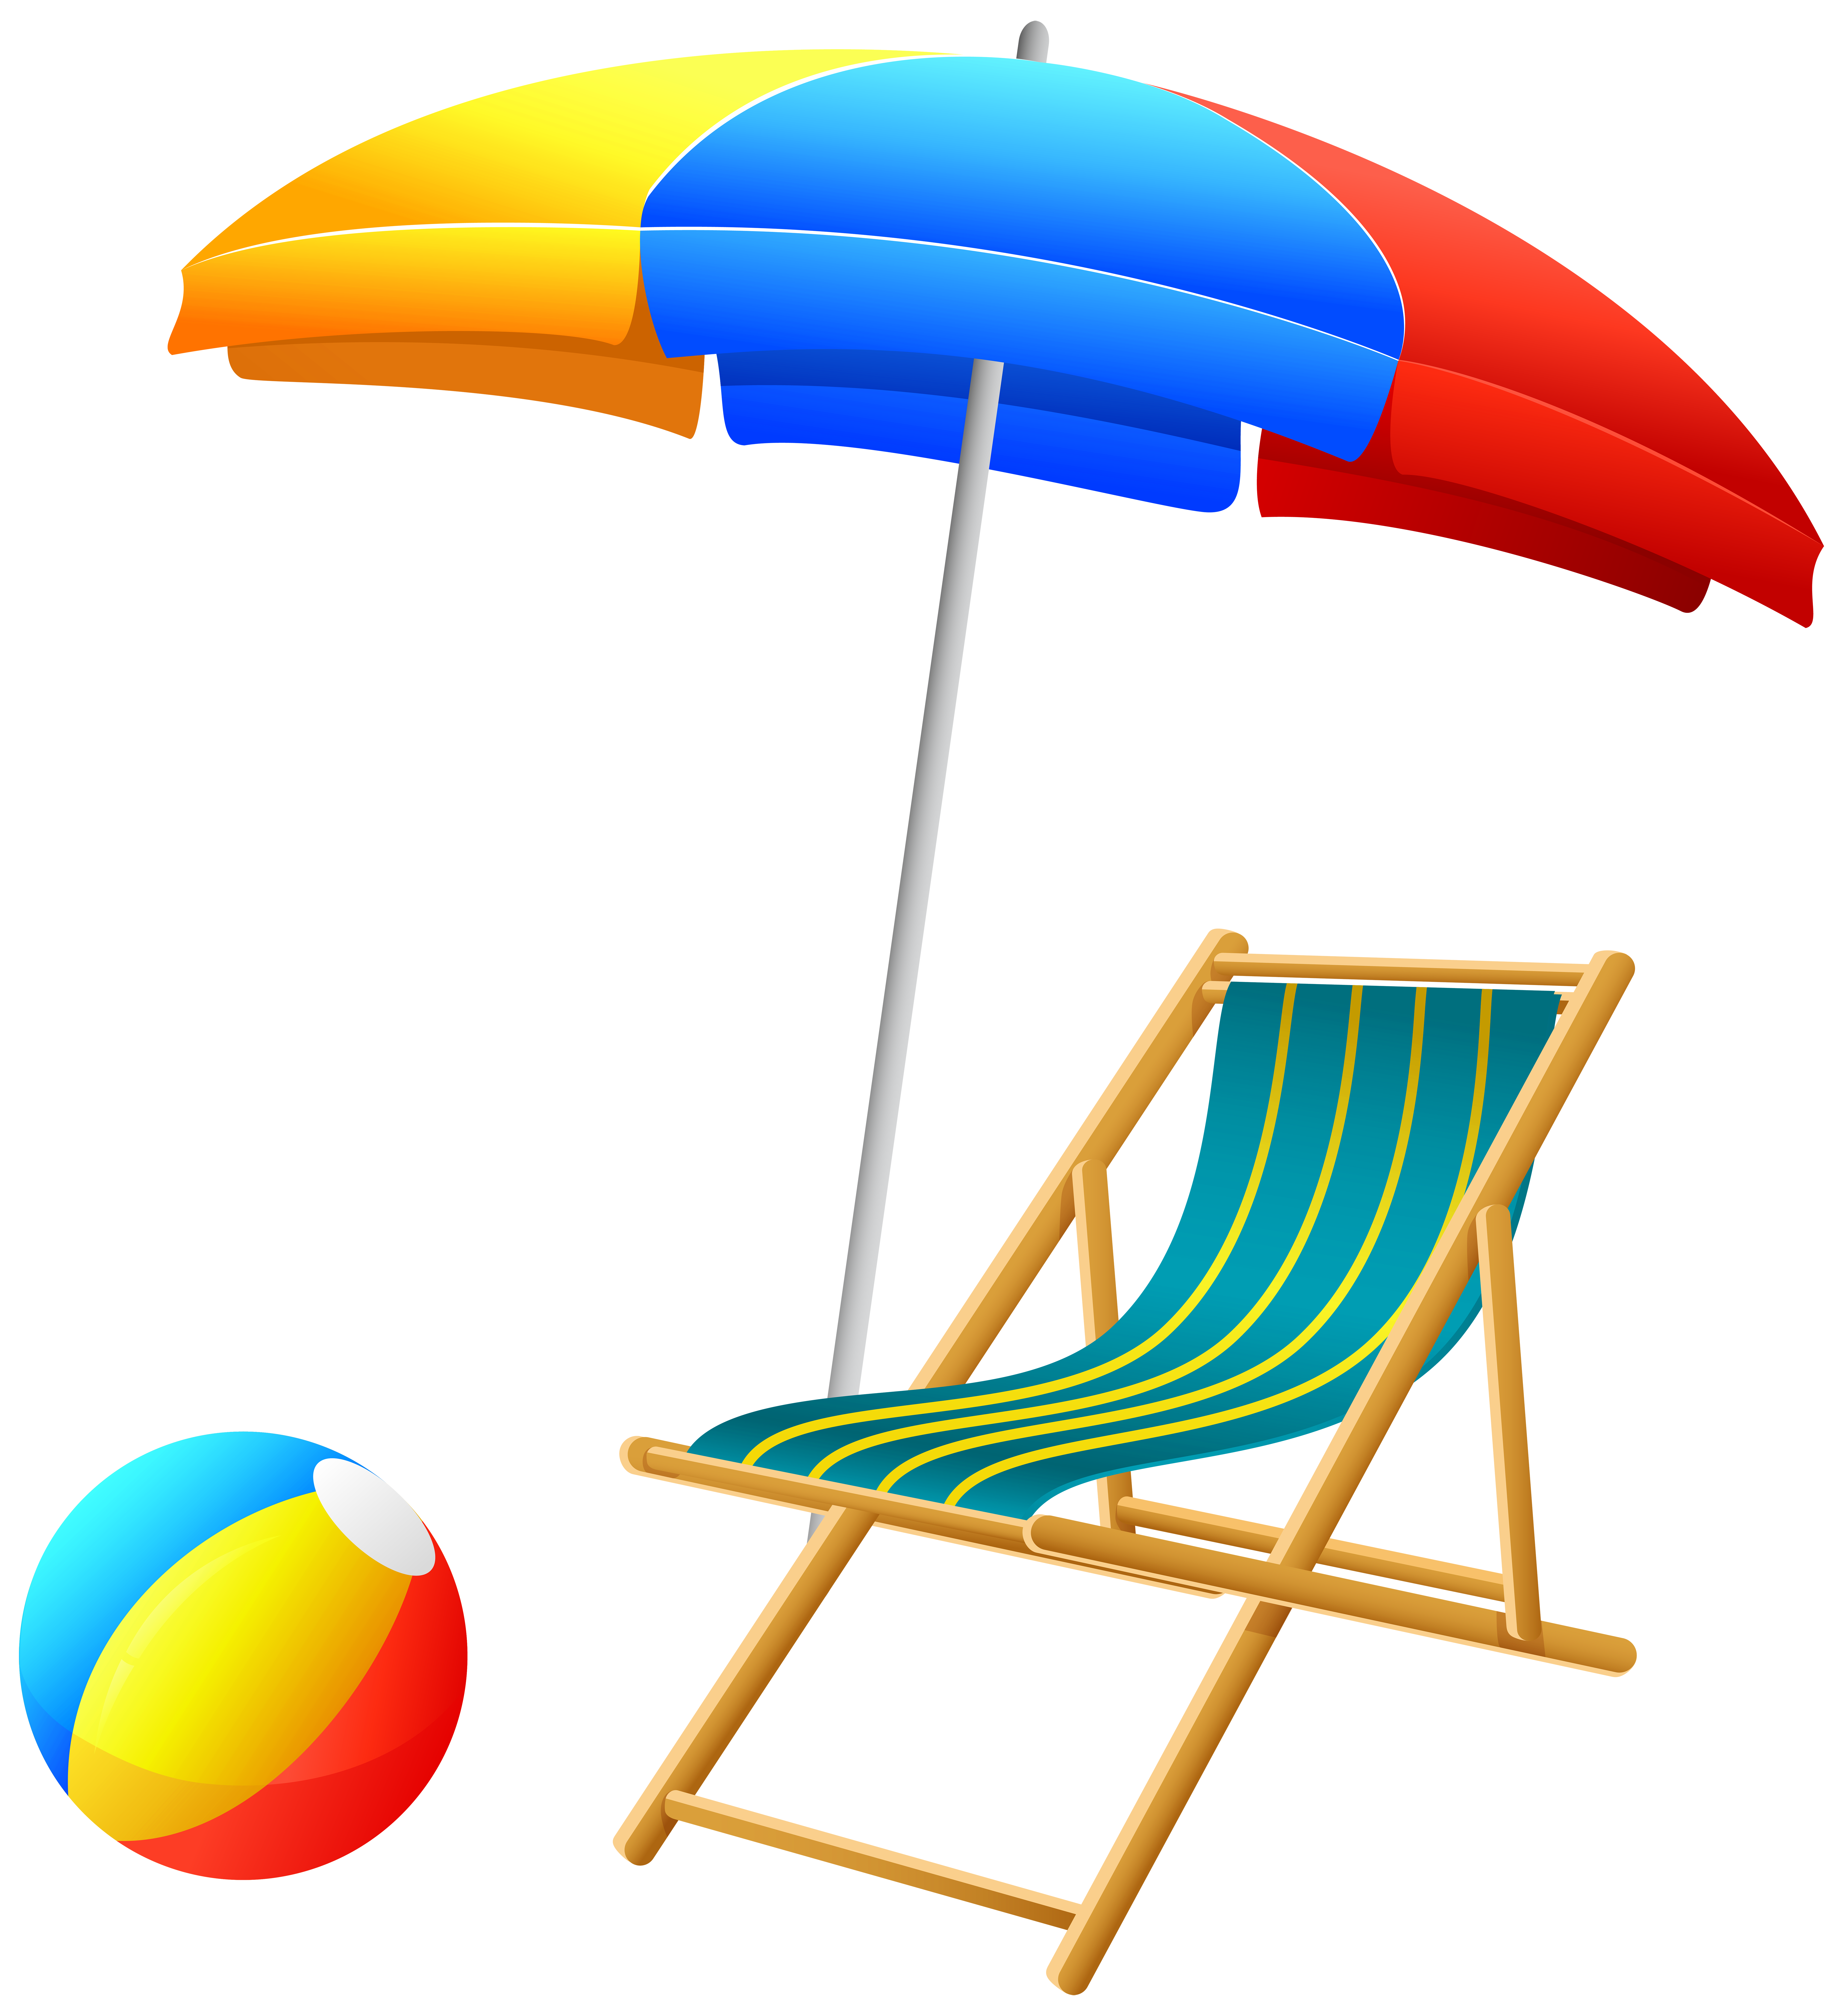 Beachball clipart chair. Beach umbrella with and